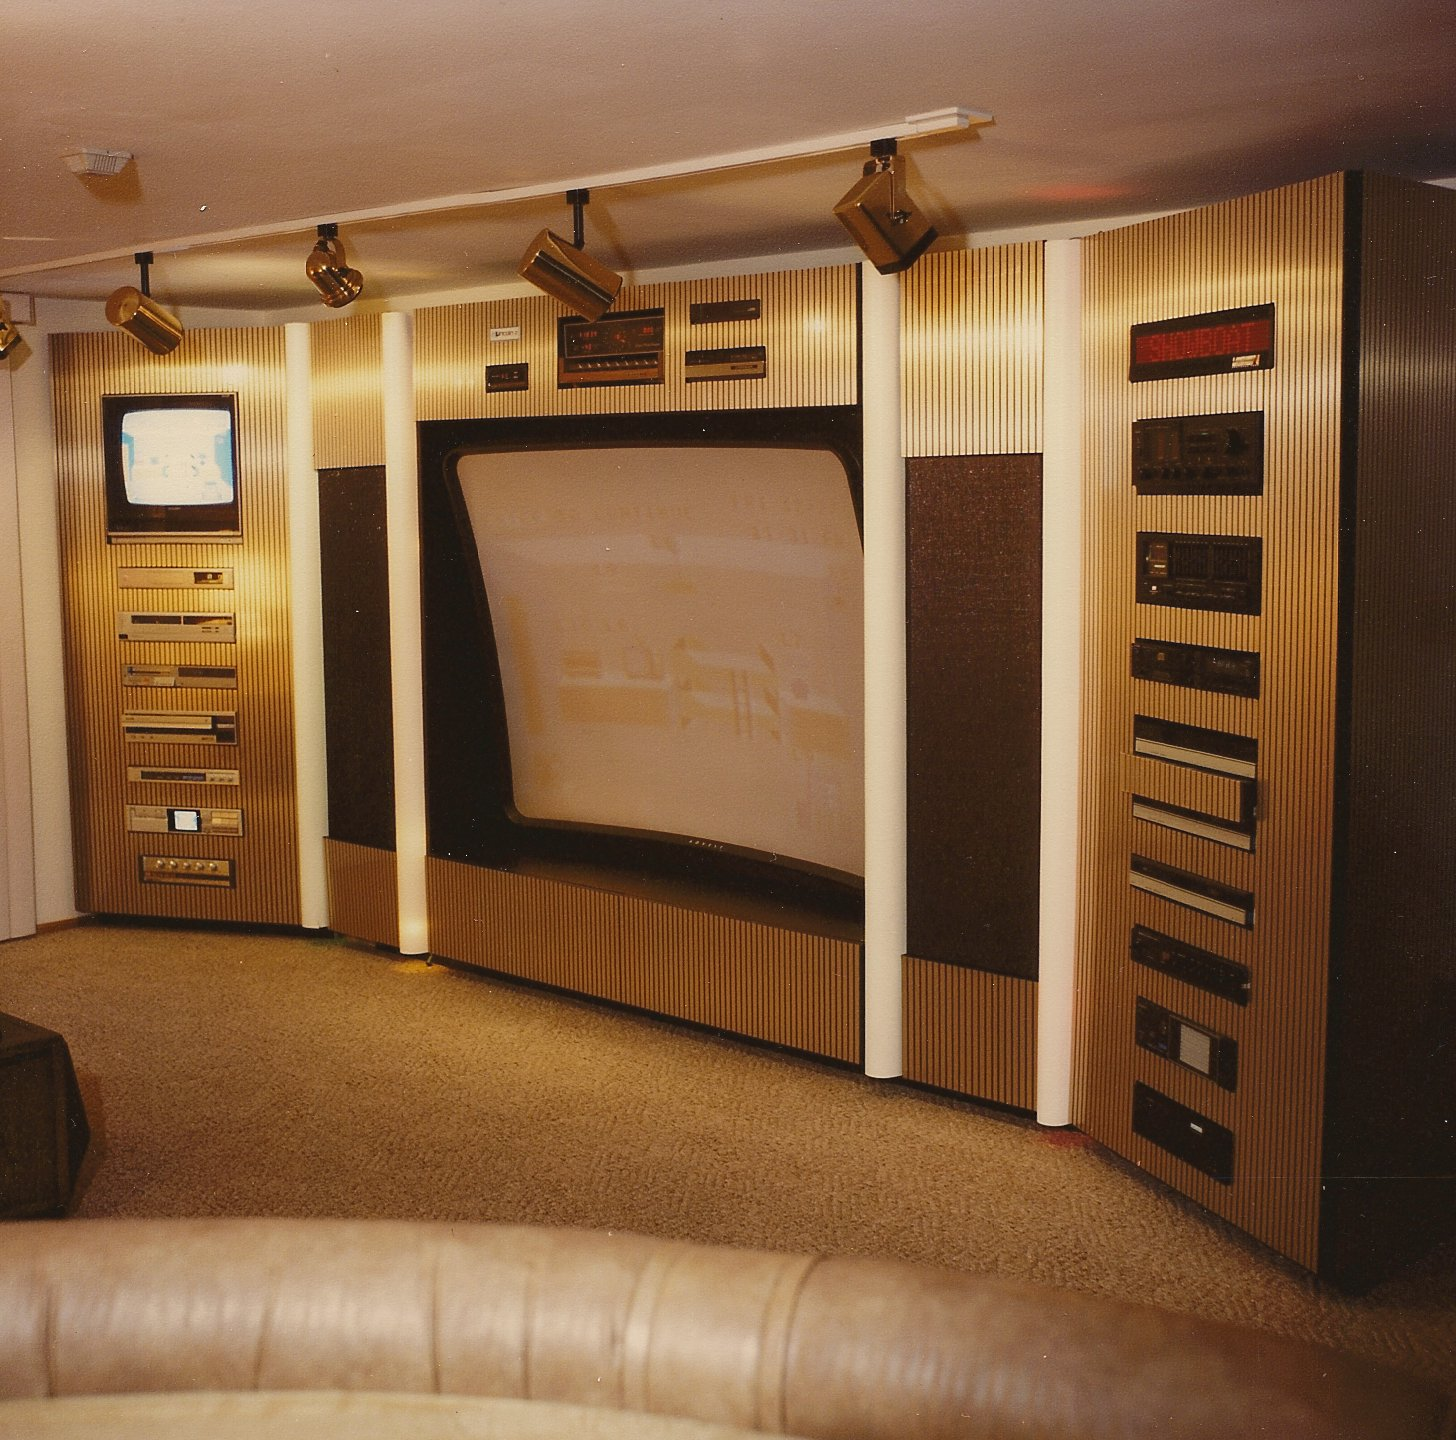 Home Cinema Room Home Theater: Installation